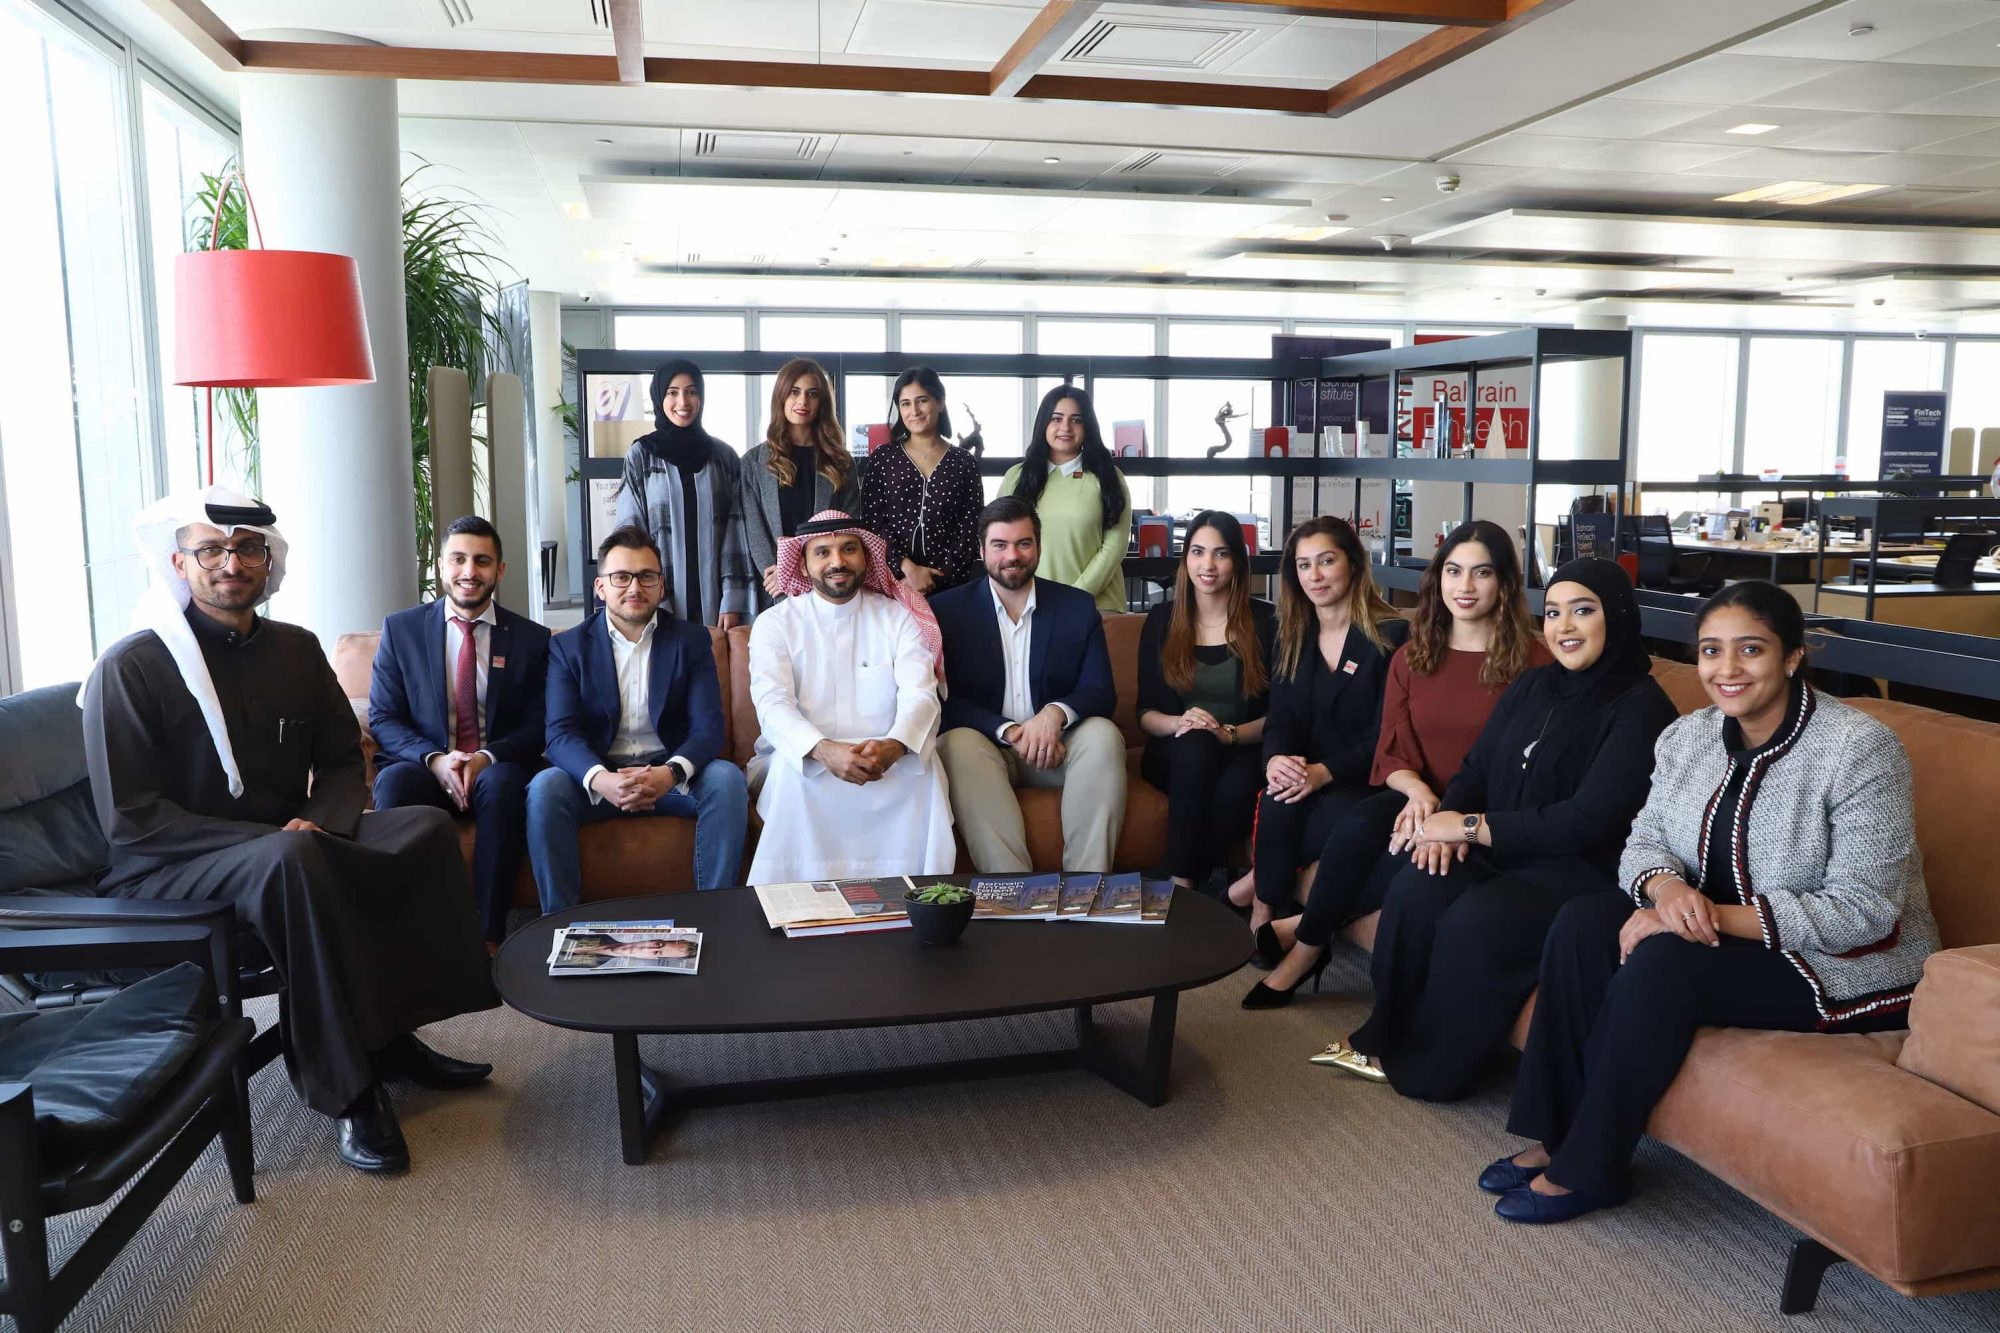 Bahrain FinTech Bay just had its first birthday bash